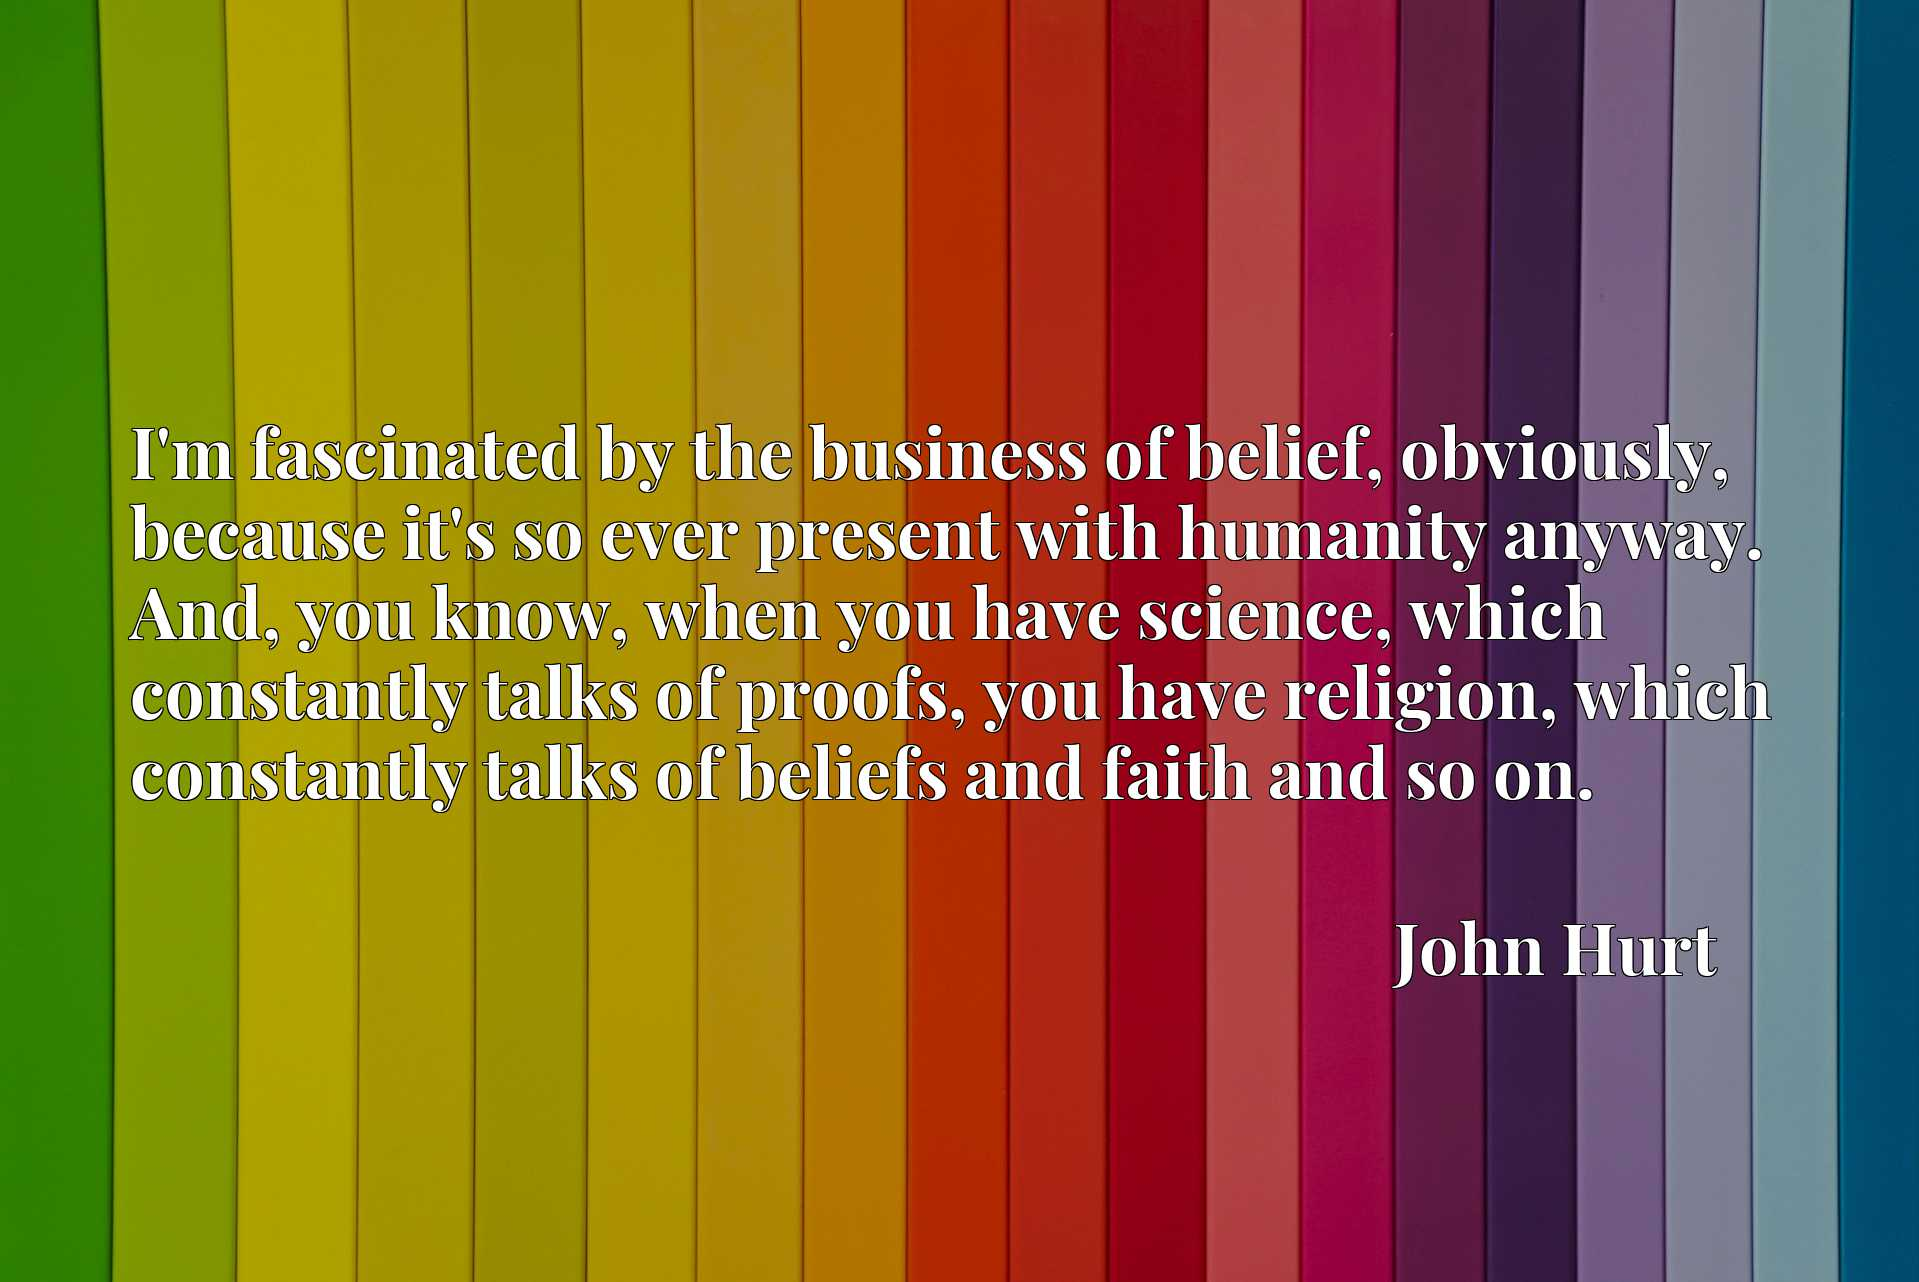 I'm fascinated by the business of belief, obviously, because it's so ever present with humanity anyway. And, you know, when you have science, which constantly talks of proofs, you have religion, which constantly talks of beliefs and faith and so on.